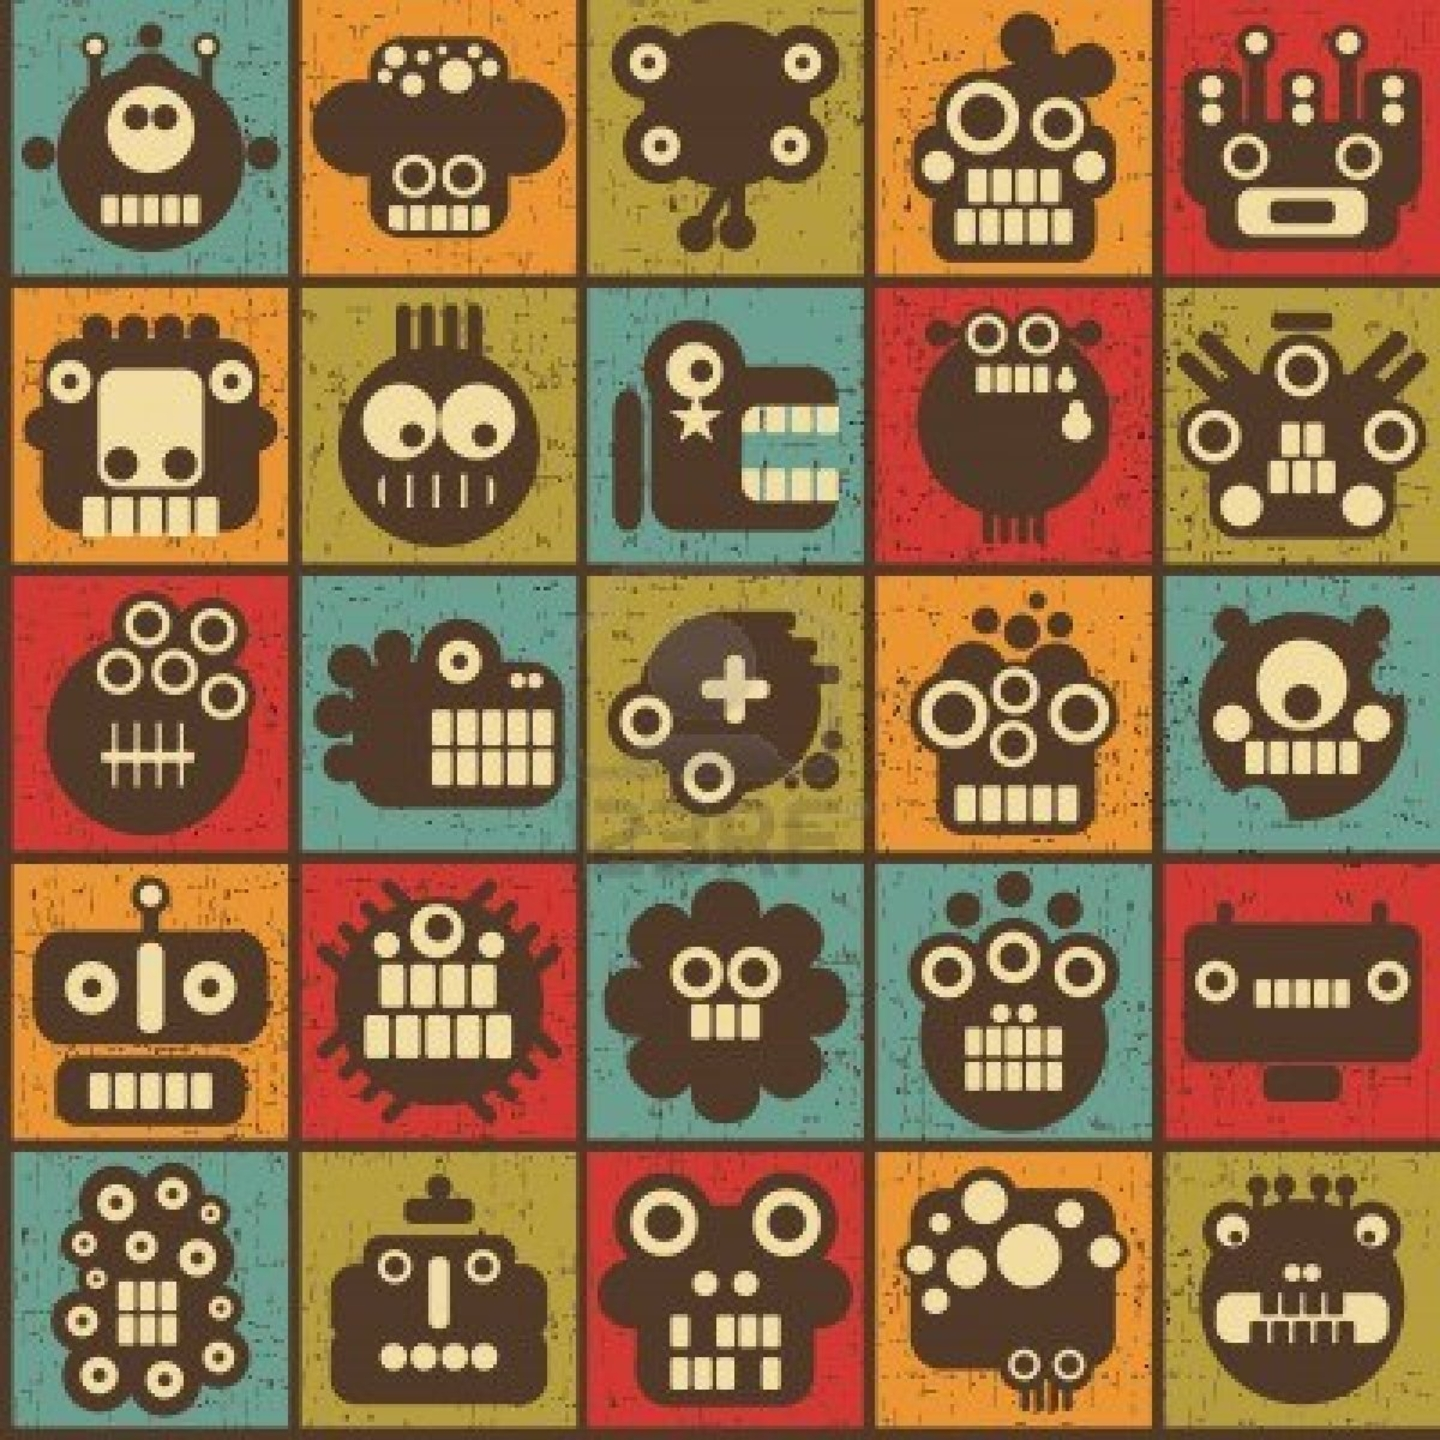 Retro Robot Wallpaper likewise Fotos De Archivo Procesador Abstracto Image25938033 besides Stock Photo Global Digital Technology Concept Image17575170 additionally Good Technology Vector   5959 likewise Digital Background. on circuit board vector